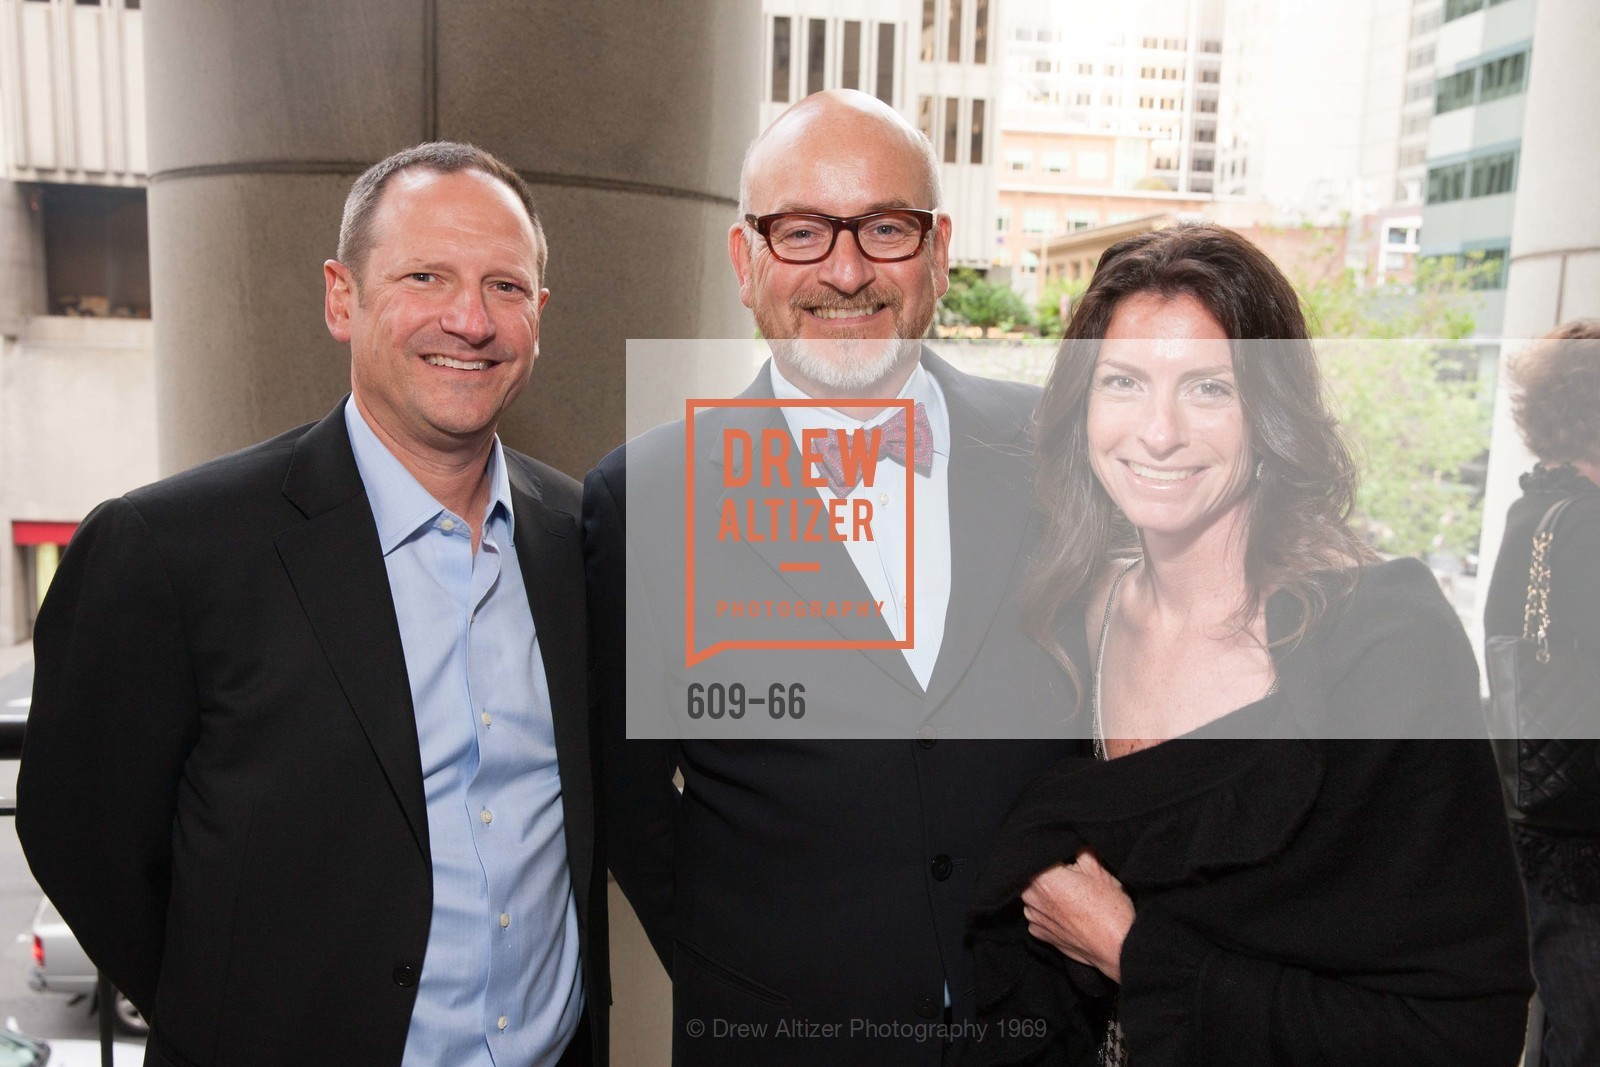 Extras, Compass Family Services Annual Spring Benefit - Every Family Needs A Home, April 22nd, 2015, Photo,Drew Altizer, Drew Altizer Photography, full-service agency, private events, San Francisco photographer, photographer california